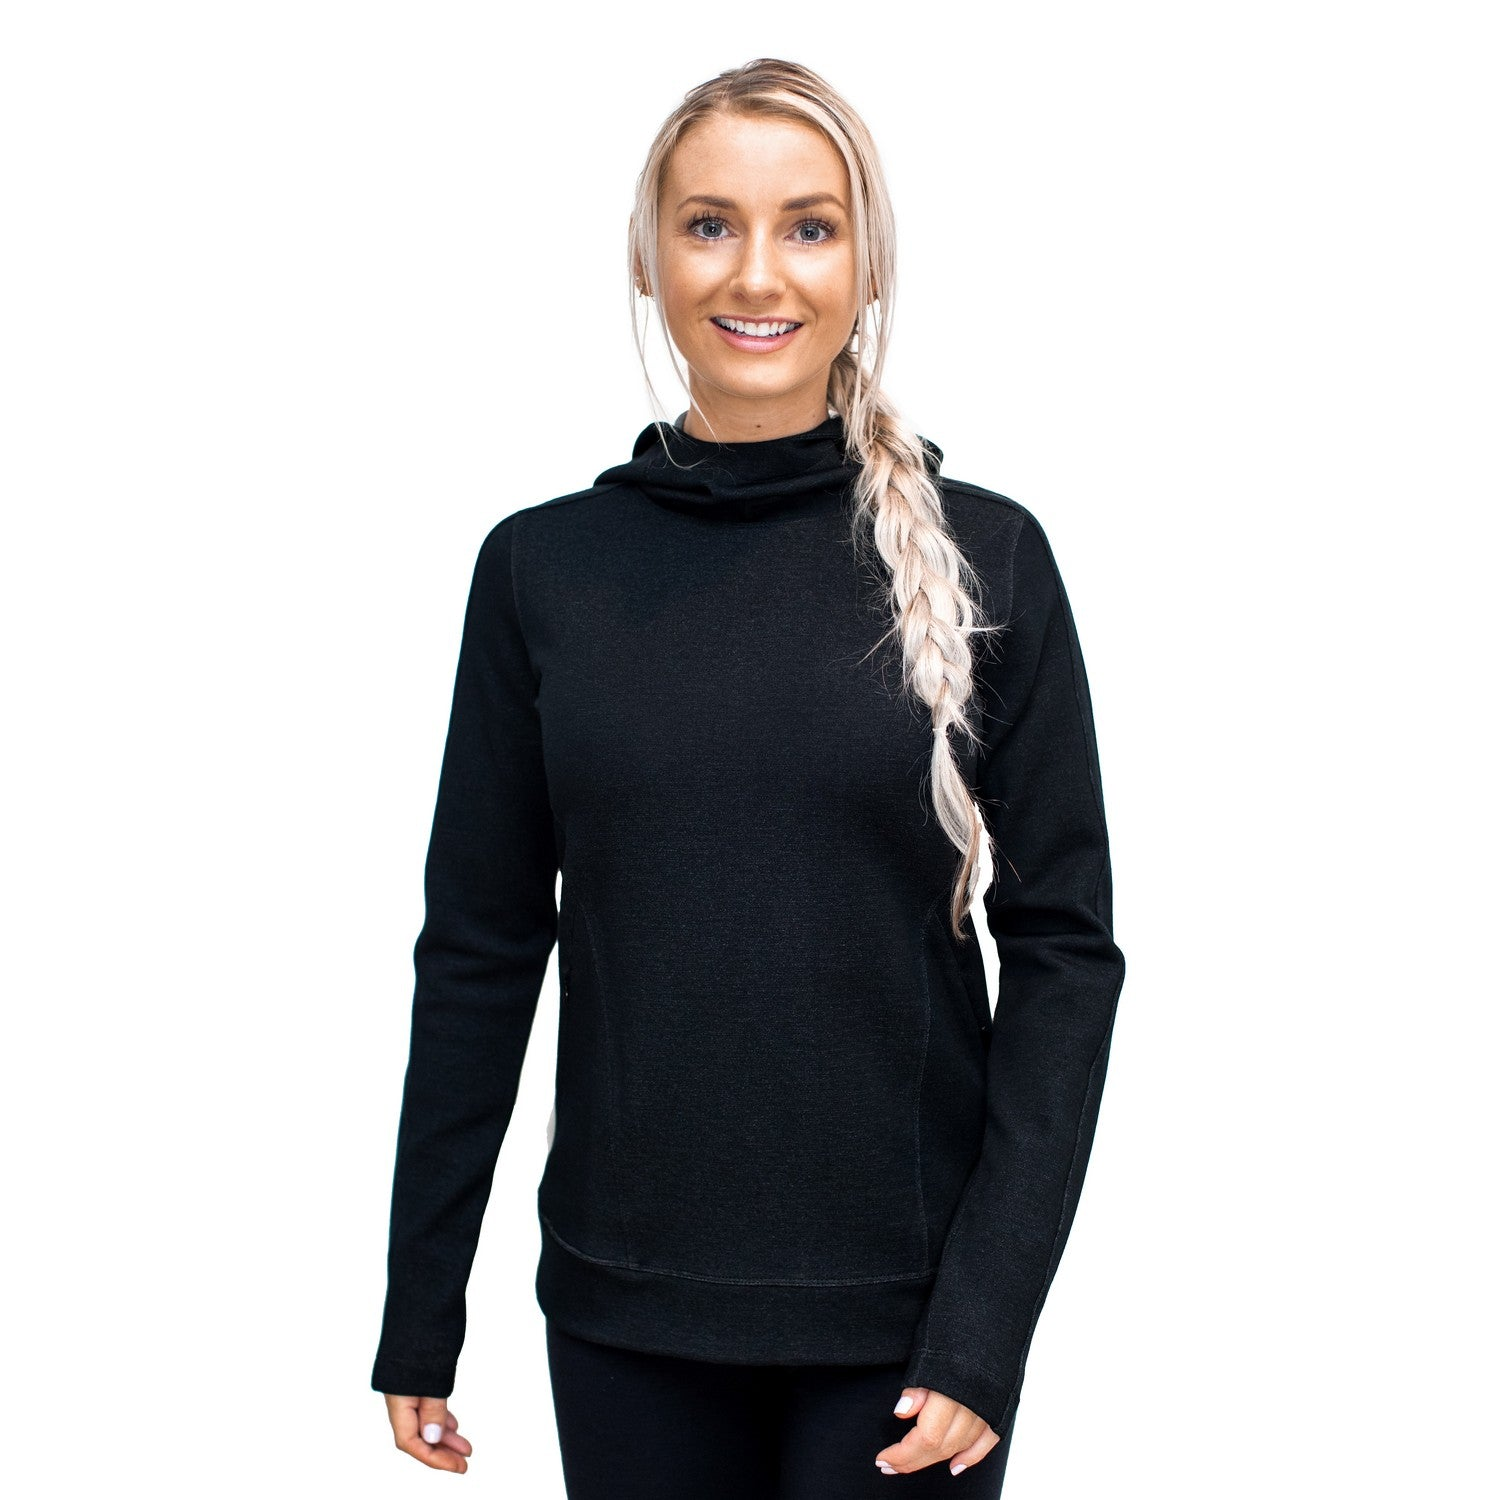 Merino Wool Sweatshirt - Black